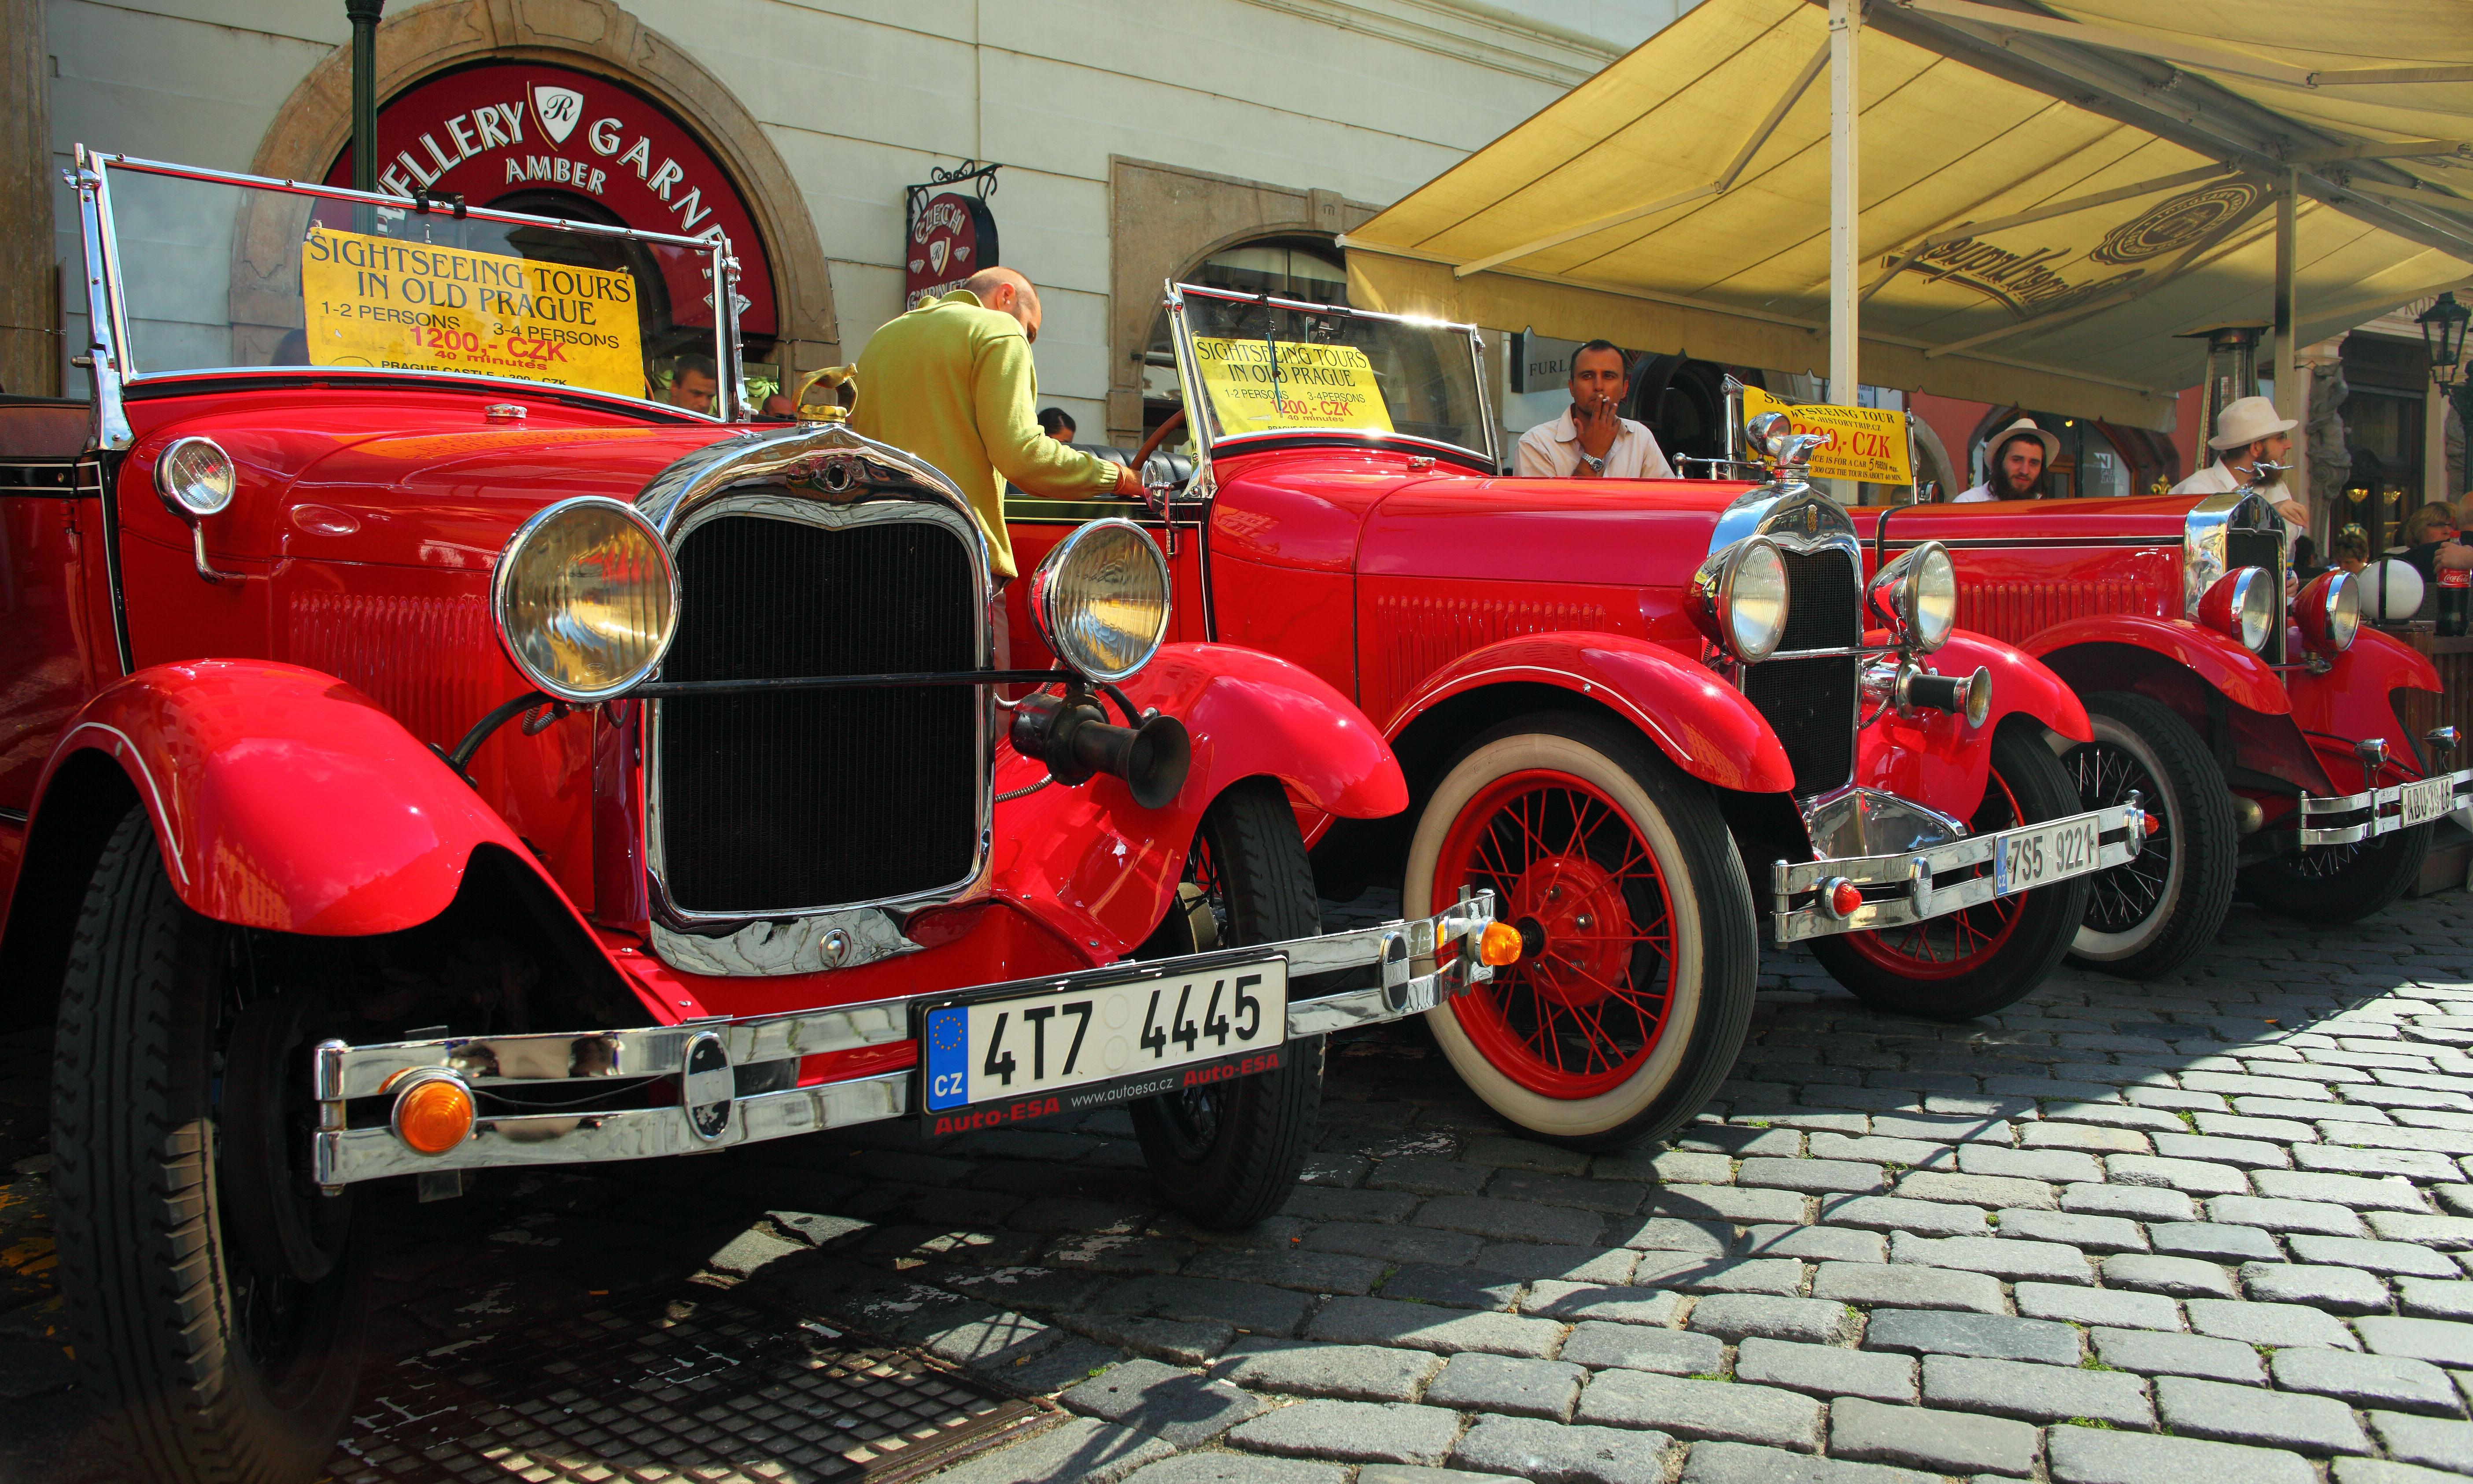 Prague vows to force dangerous imitation vintage cars off the road